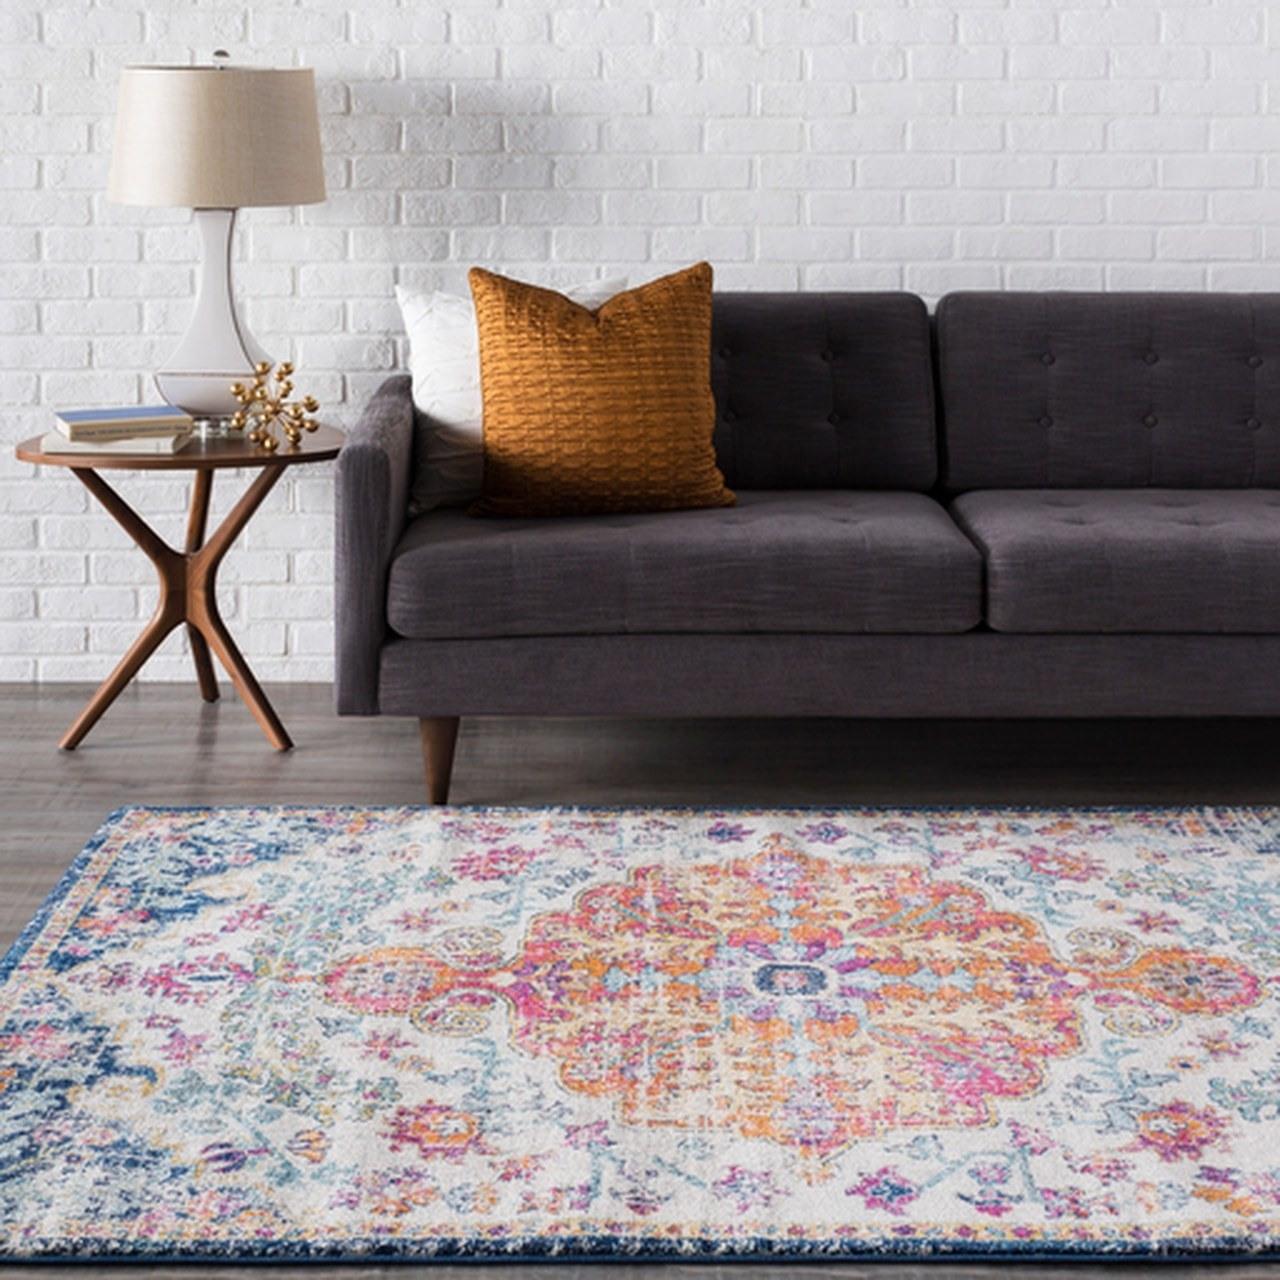 The rectangle rug with blue, pink, and orange pattern to it